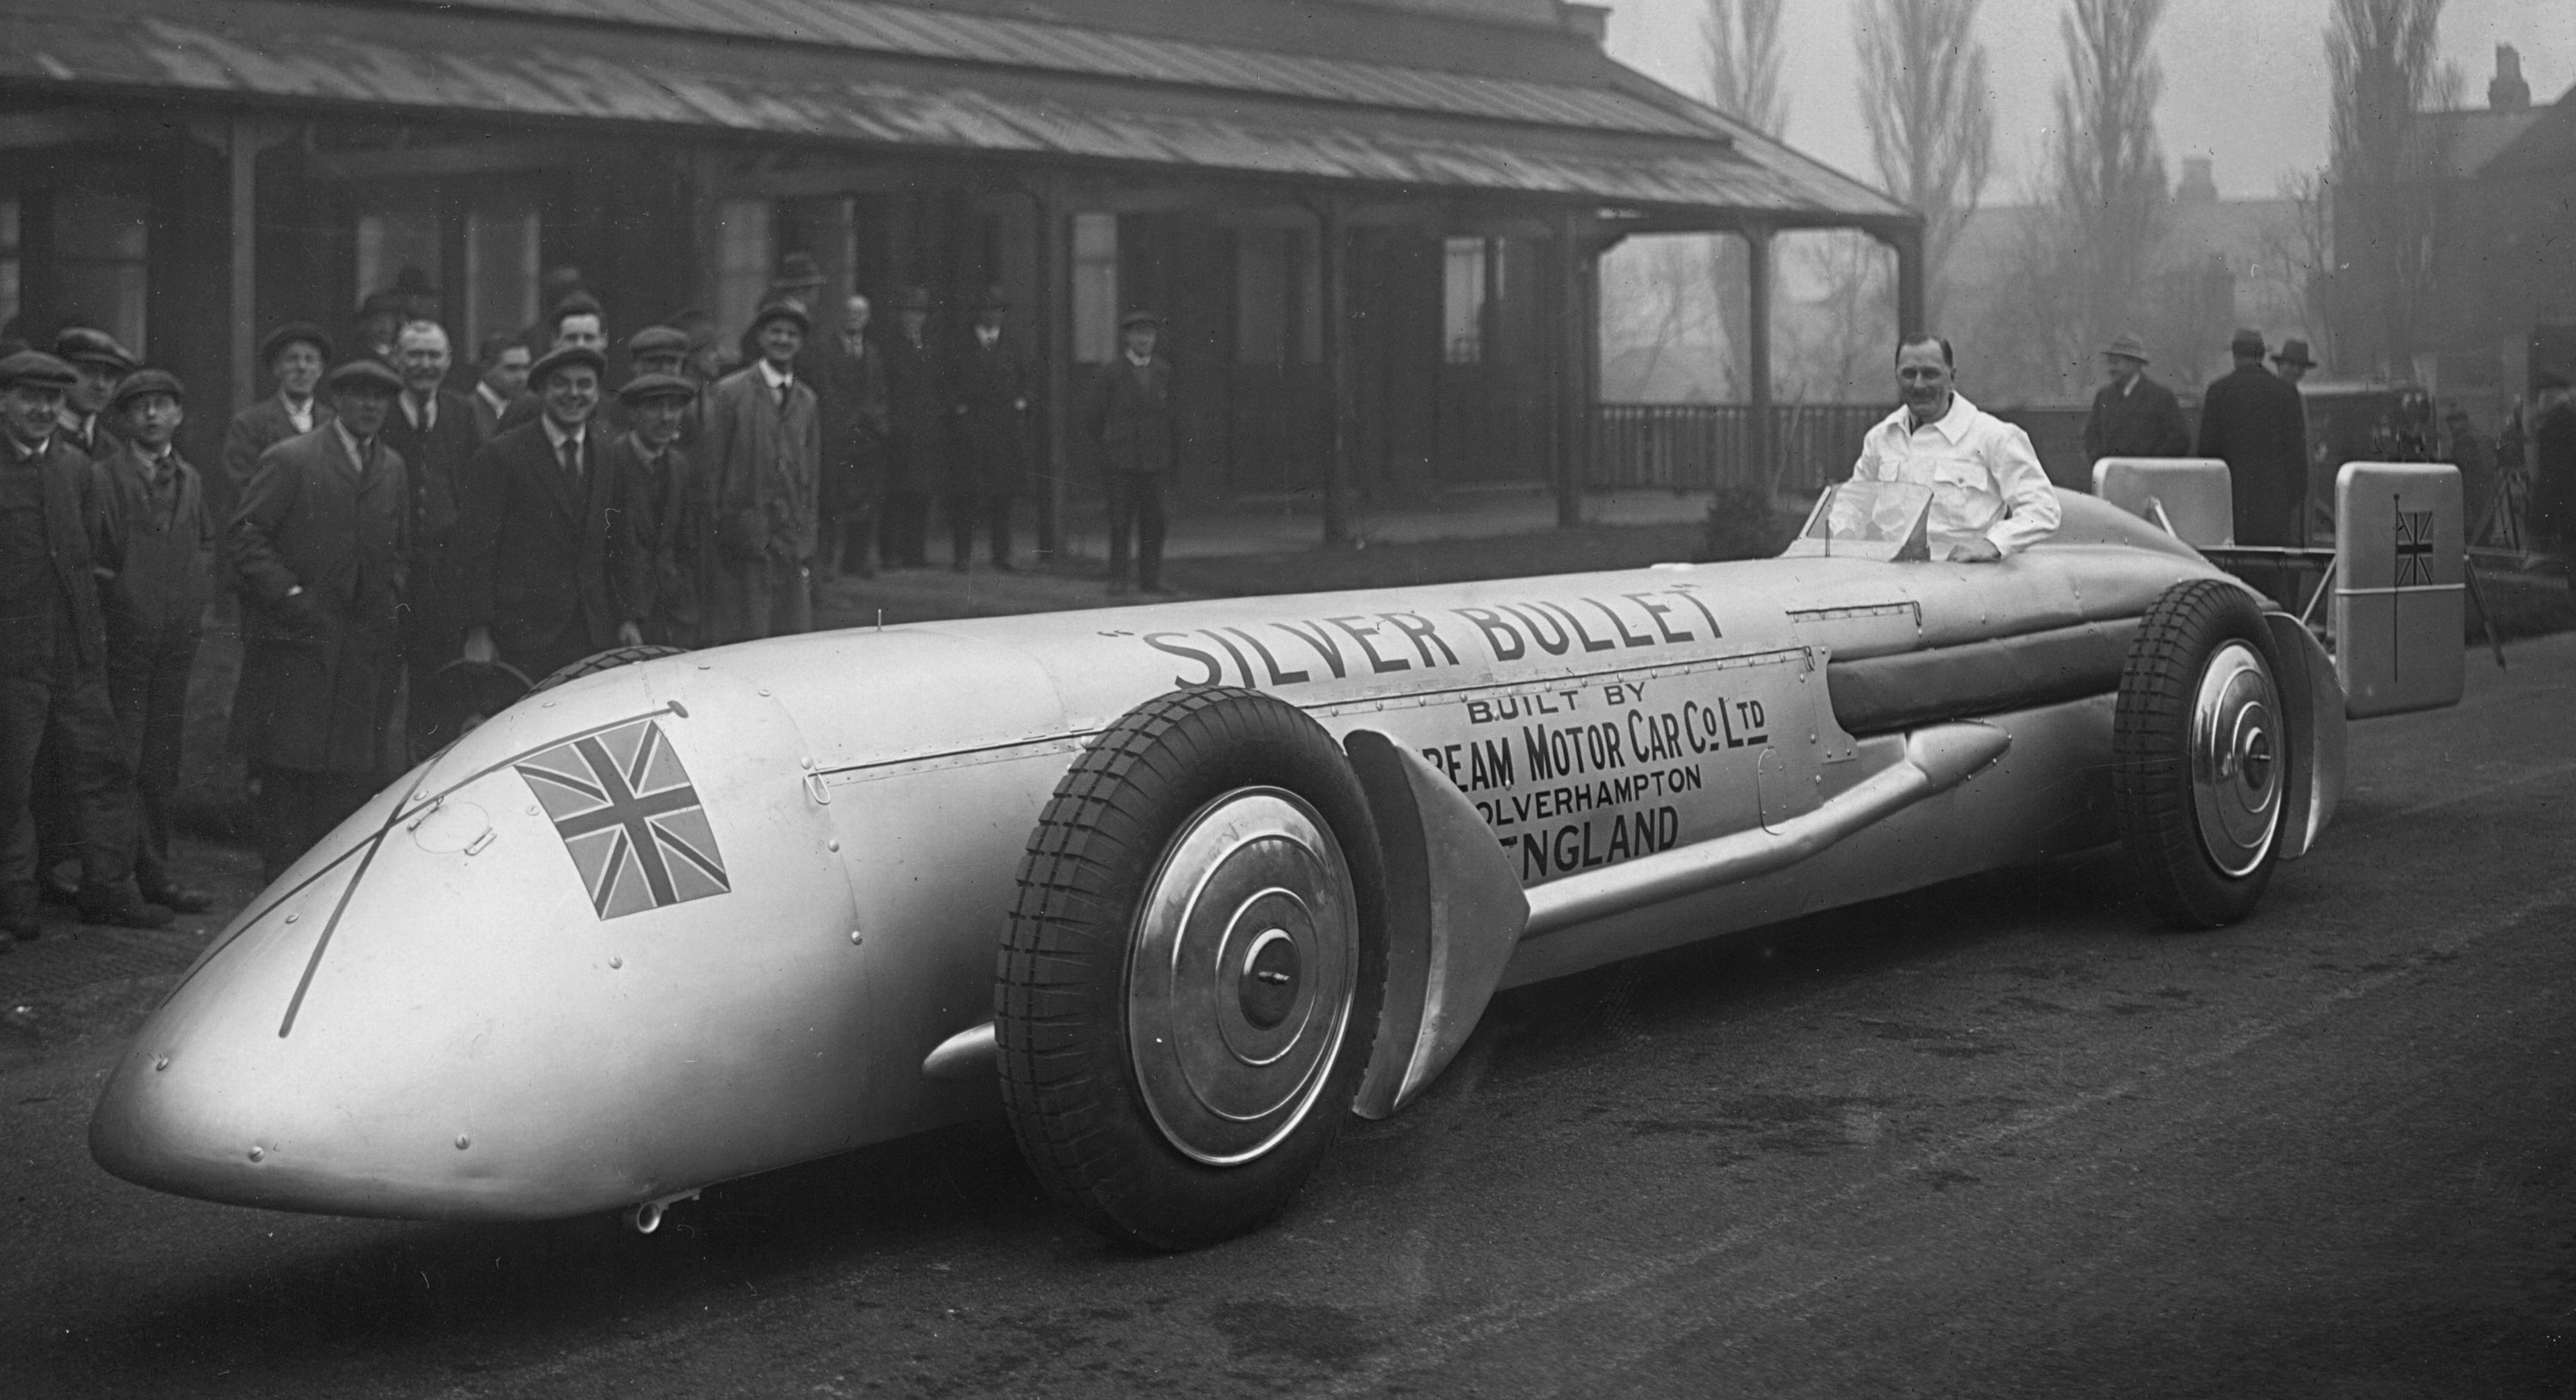 A historic black & white photograph of Kaye Don with the Silver Bullet at the factory in 1930